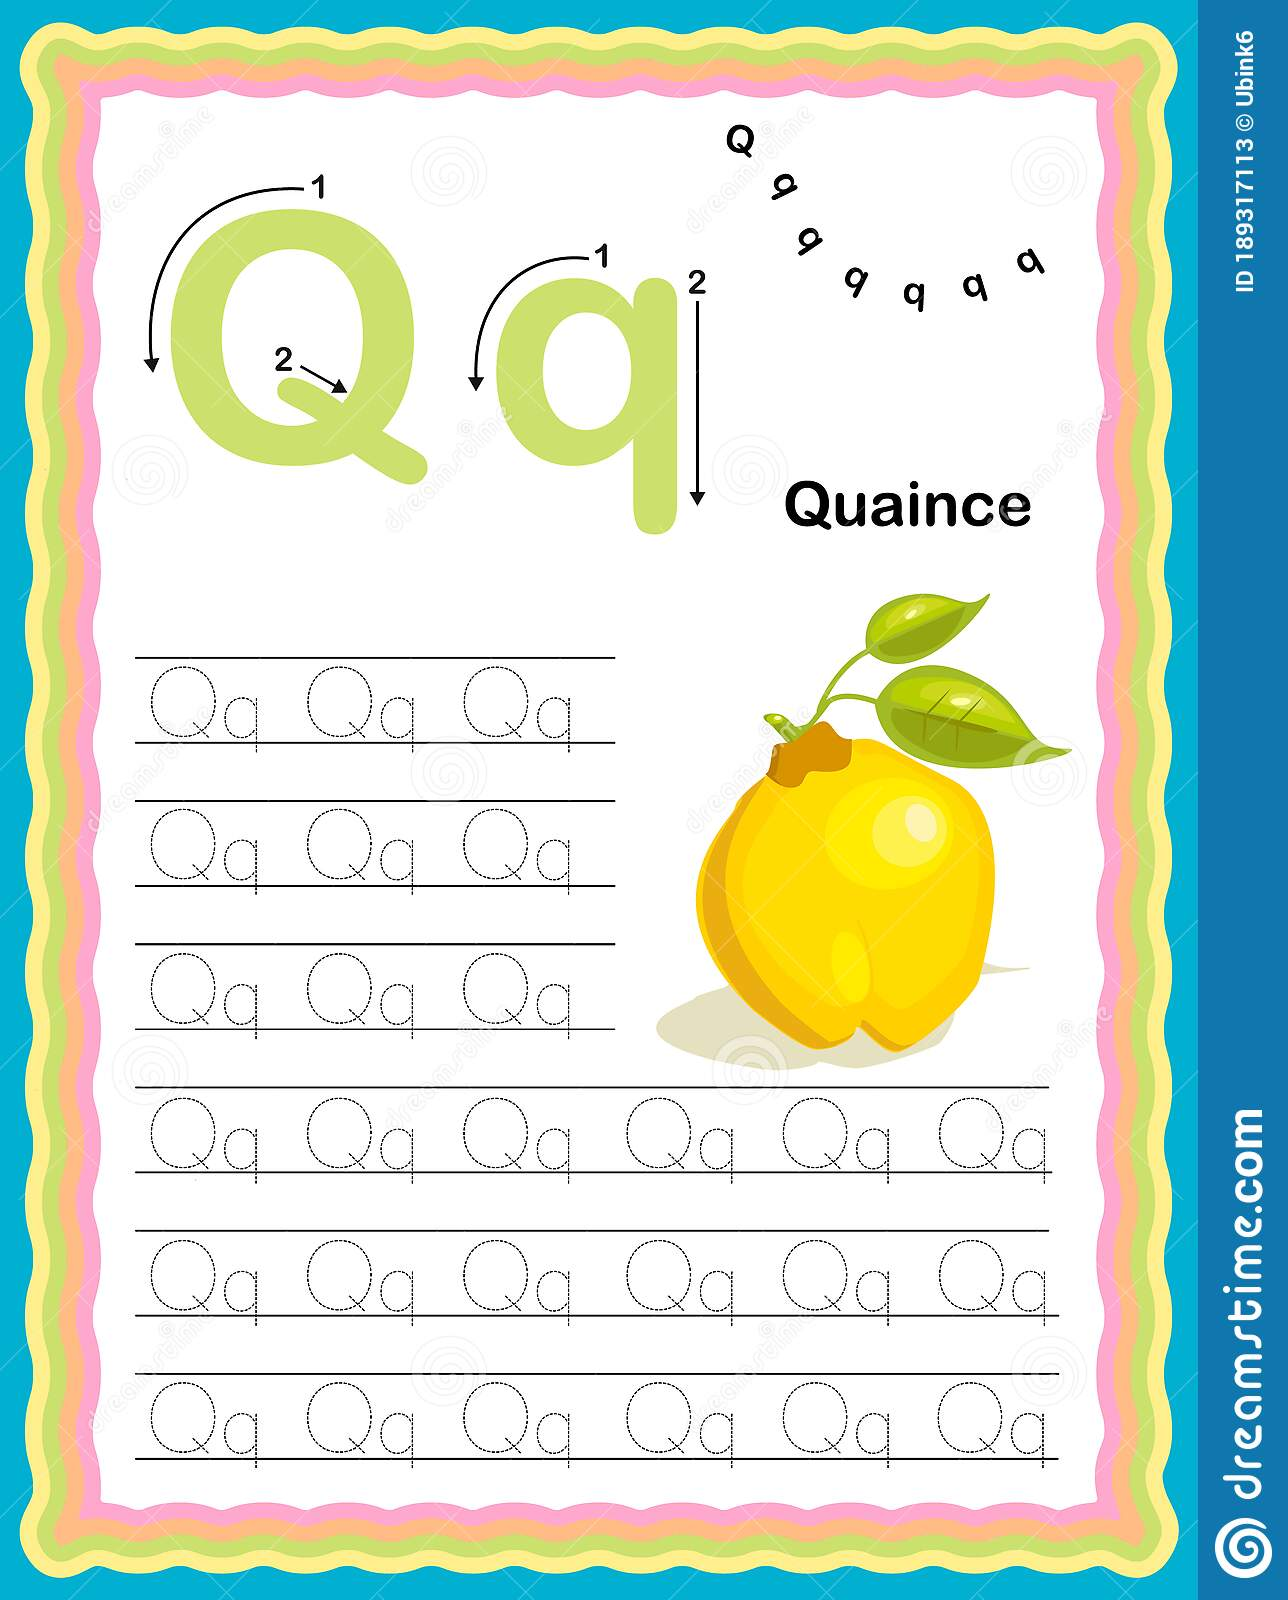 Preschool Colorful Letter Q Uppercase And Lowercase